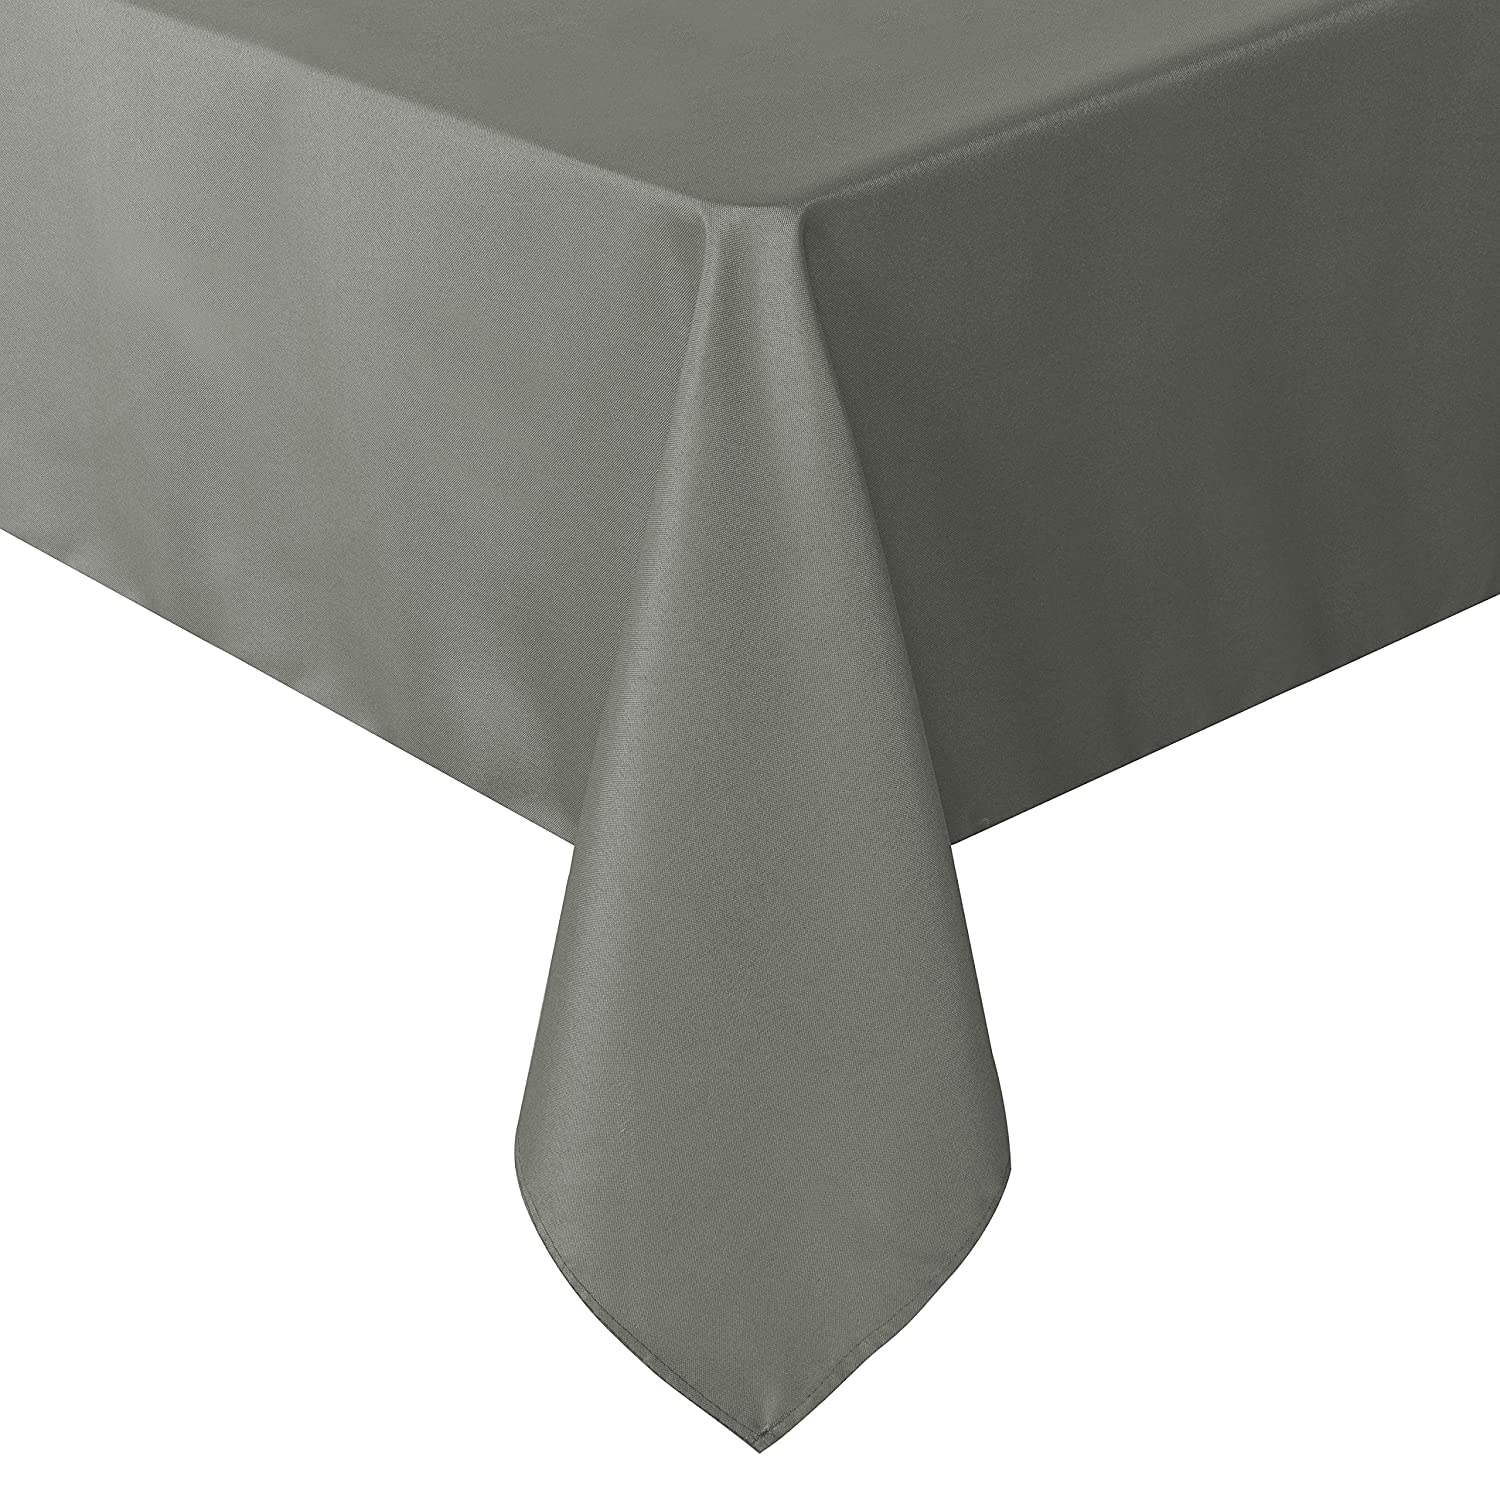 sancua Rectangle Tablecloth - 60 x 84 Inch - Stain and Wrinkle Resistant Washable Polyester Table Cloth, Decorative Fabric Table Cover for Dining Table, Buffet Parties and Camping, Light Grey